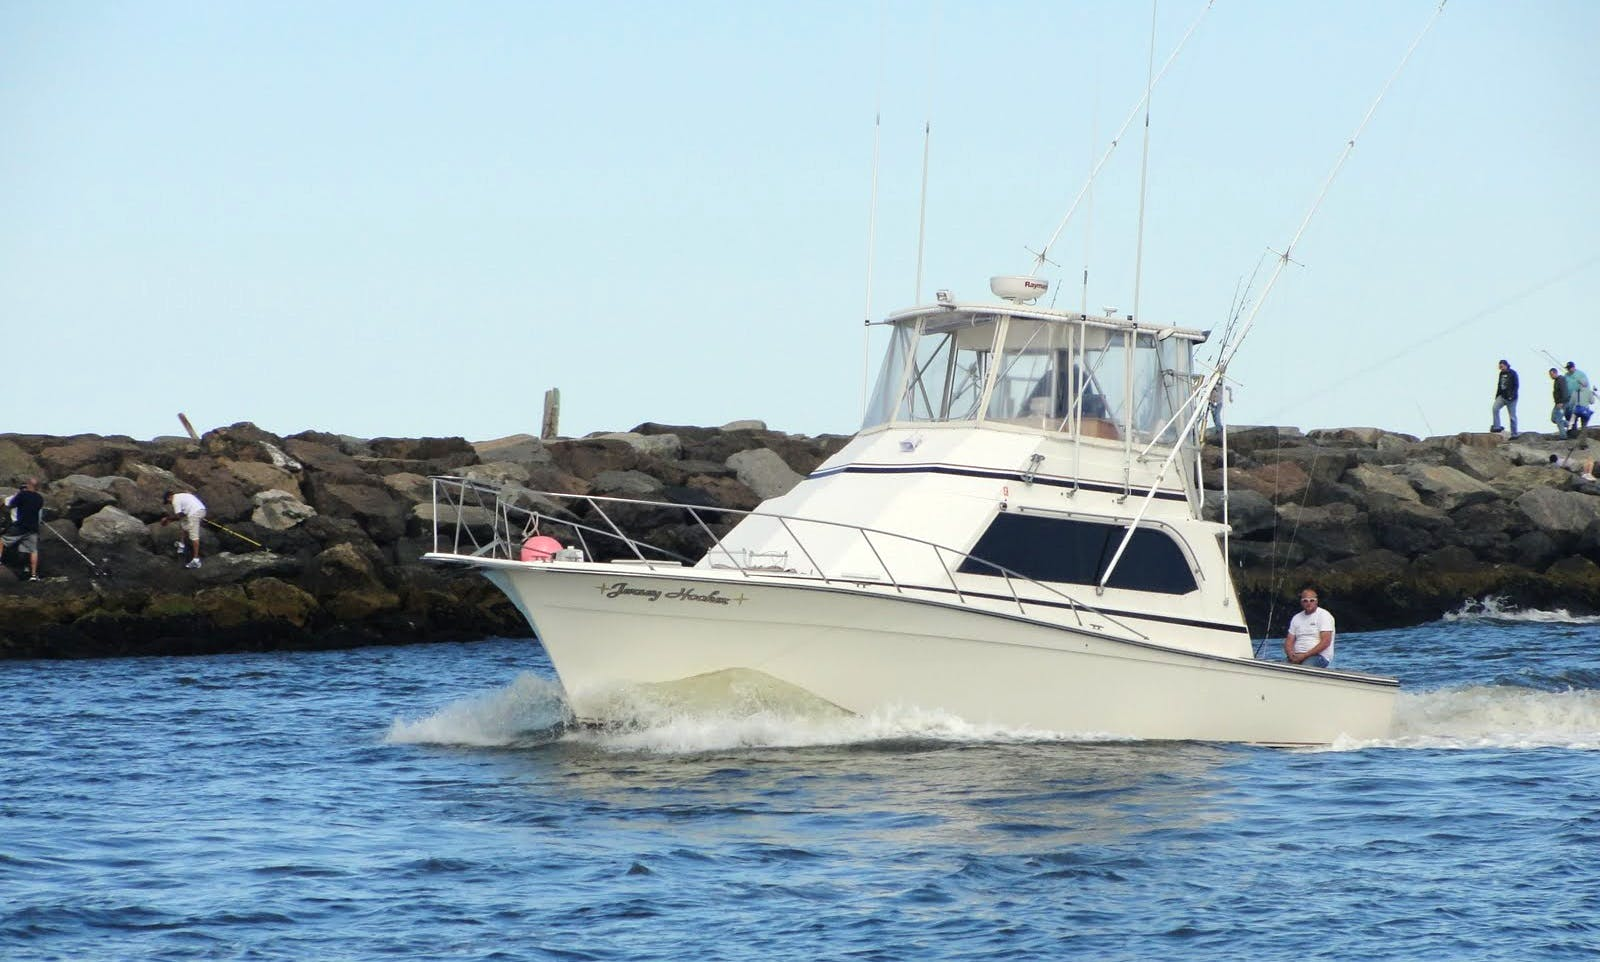 43ft Sport Fisherman Boat Charter in Point Pleasant Beach, New Jersey